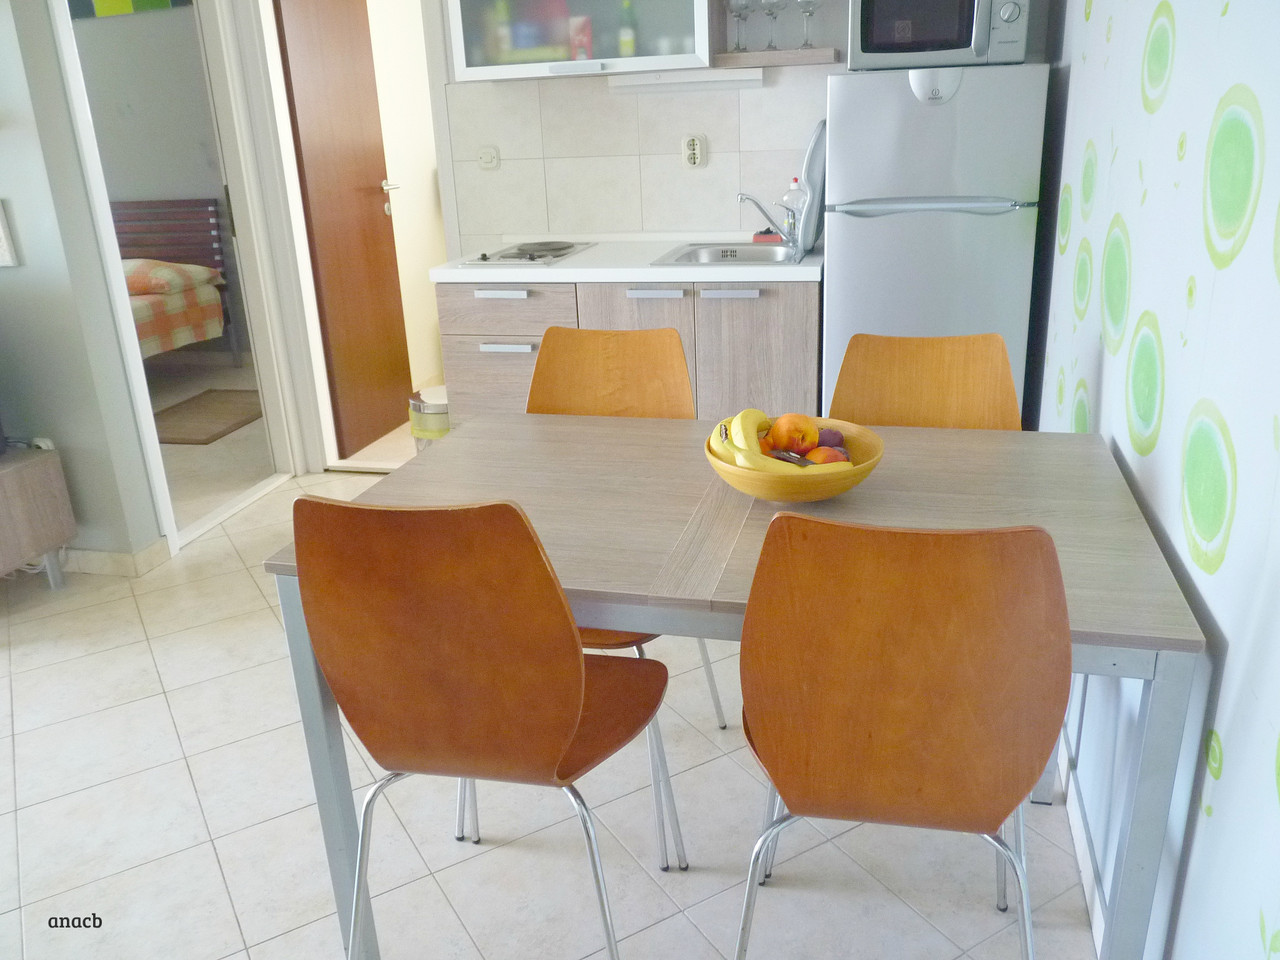 Vila Marer kitchen.jpg